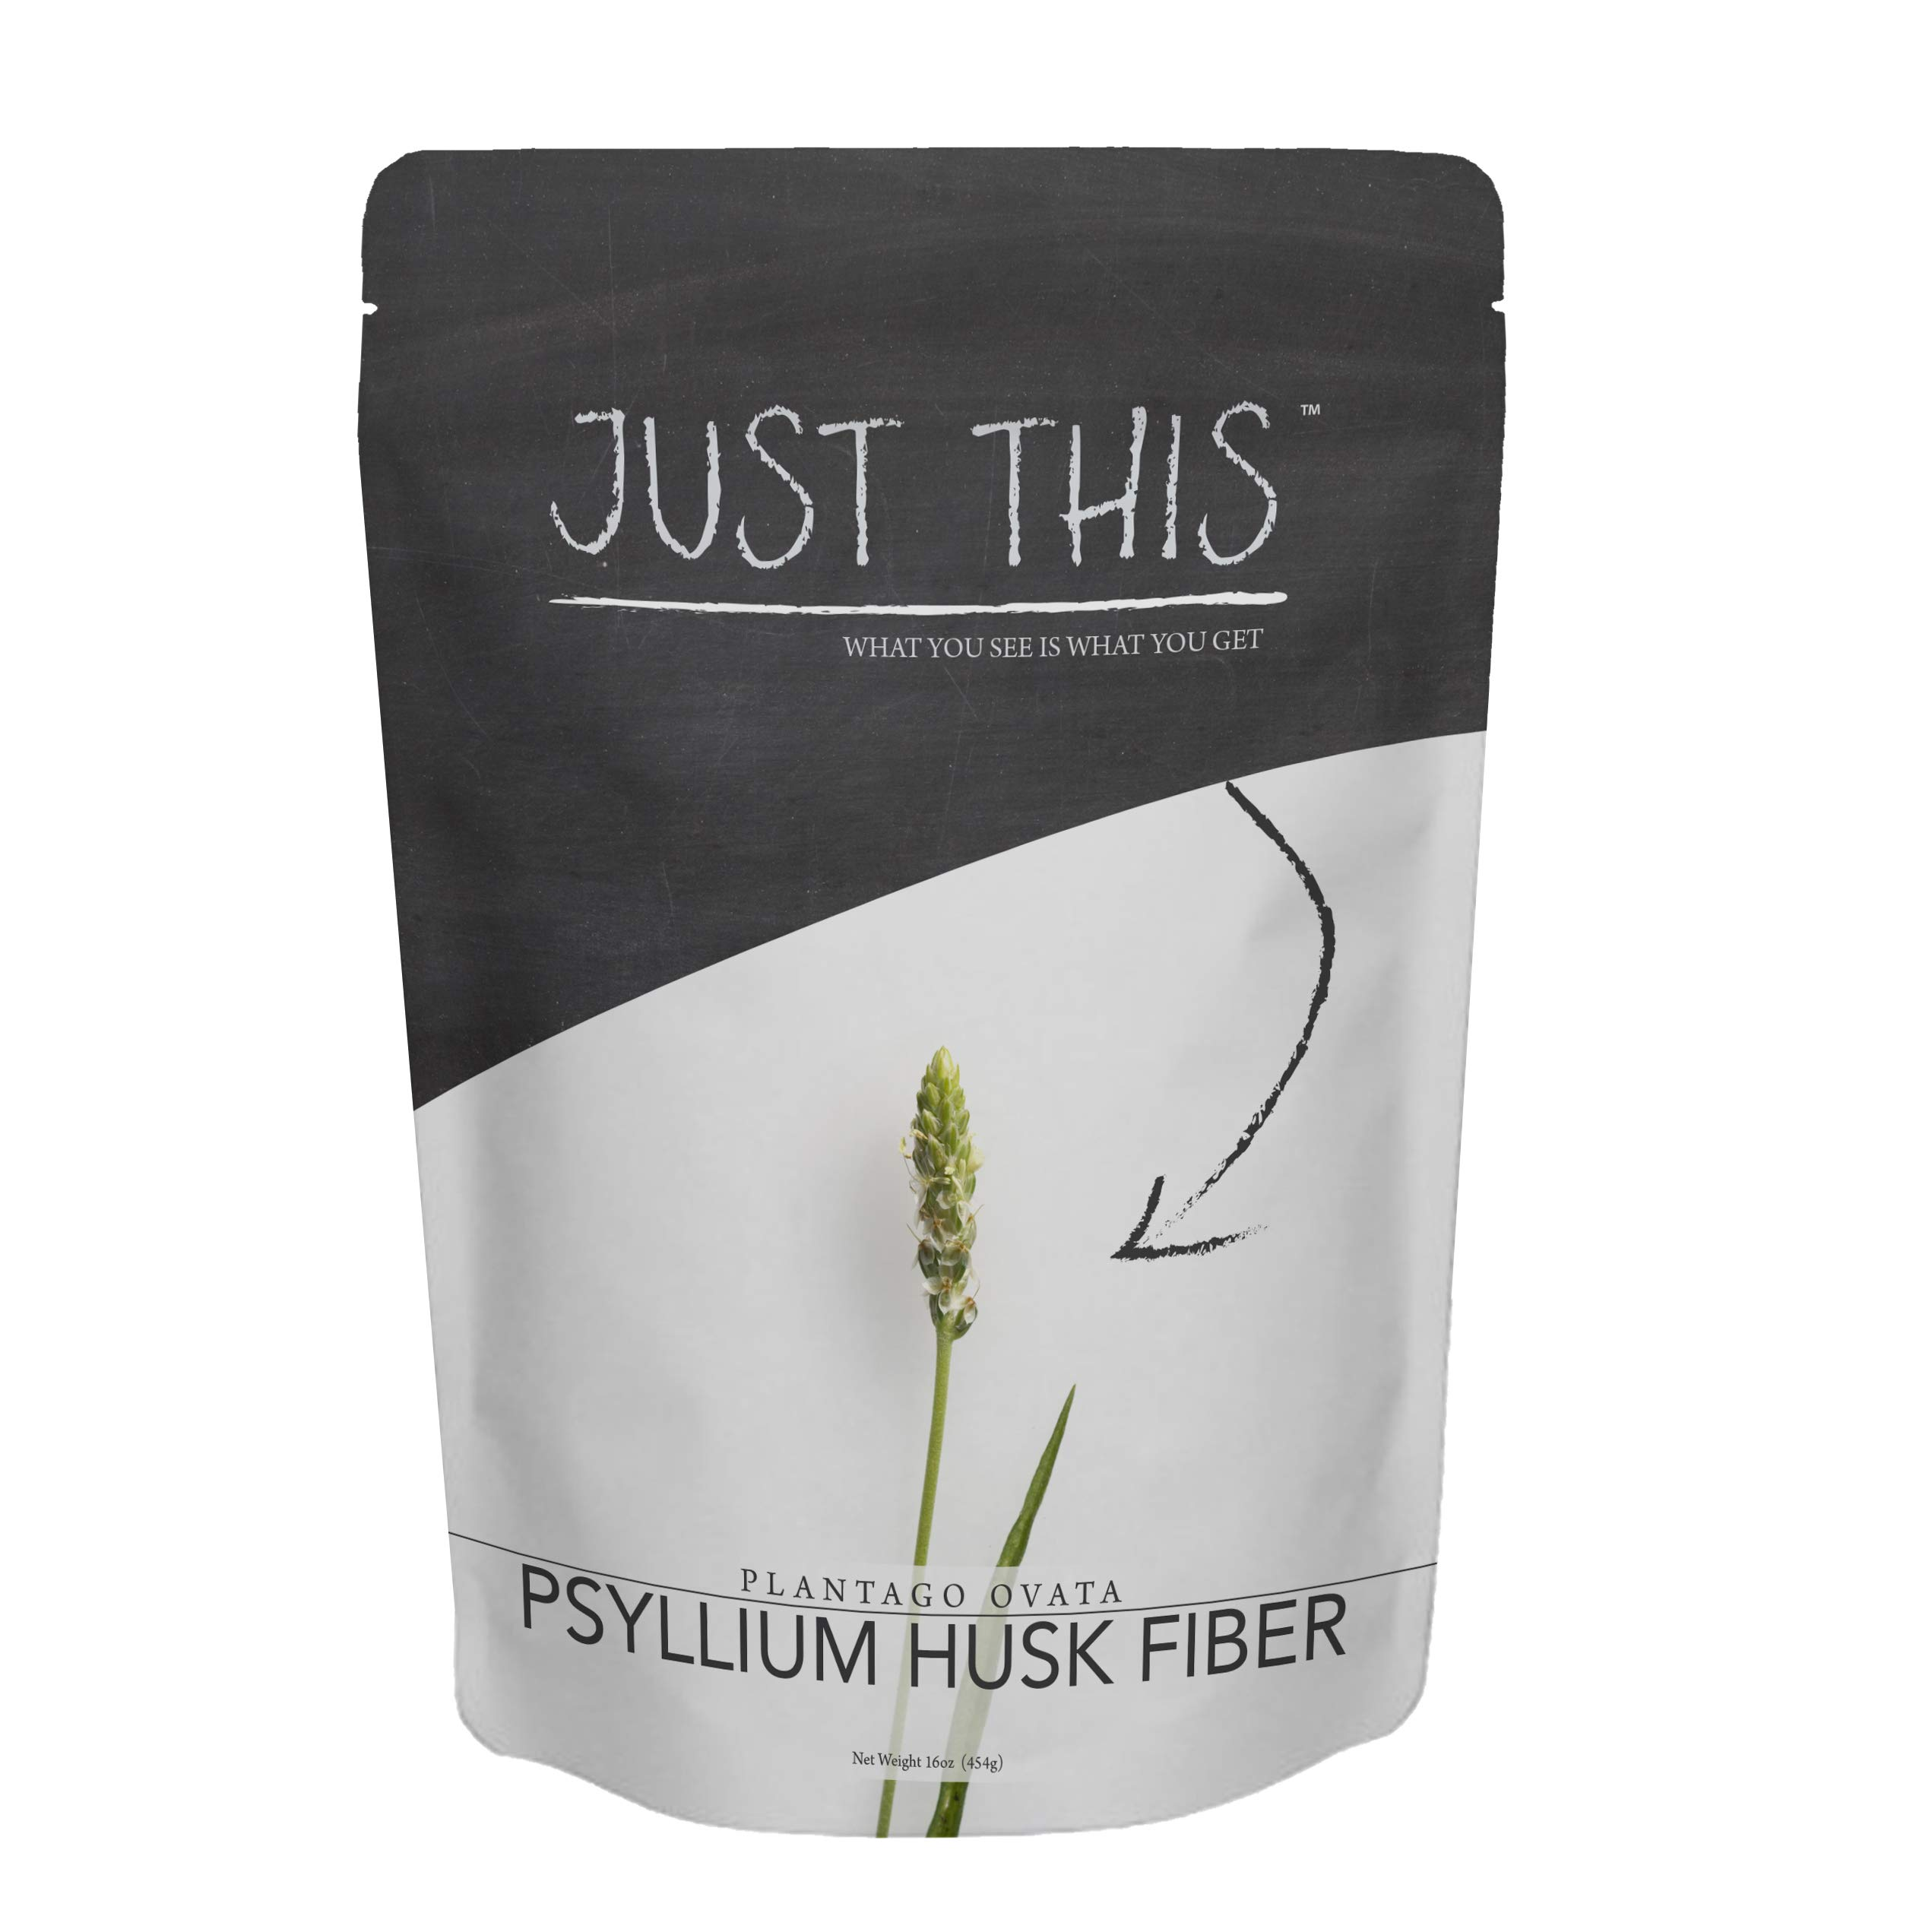 Natural Psyllium Husk Fiber Powder - Premium Soluble Fiber Supplement and Prebiotic - Simply Mix with Water or Use in Baking to Aid Constipation and Weight Loss - Just This Brand 16oz by Just This